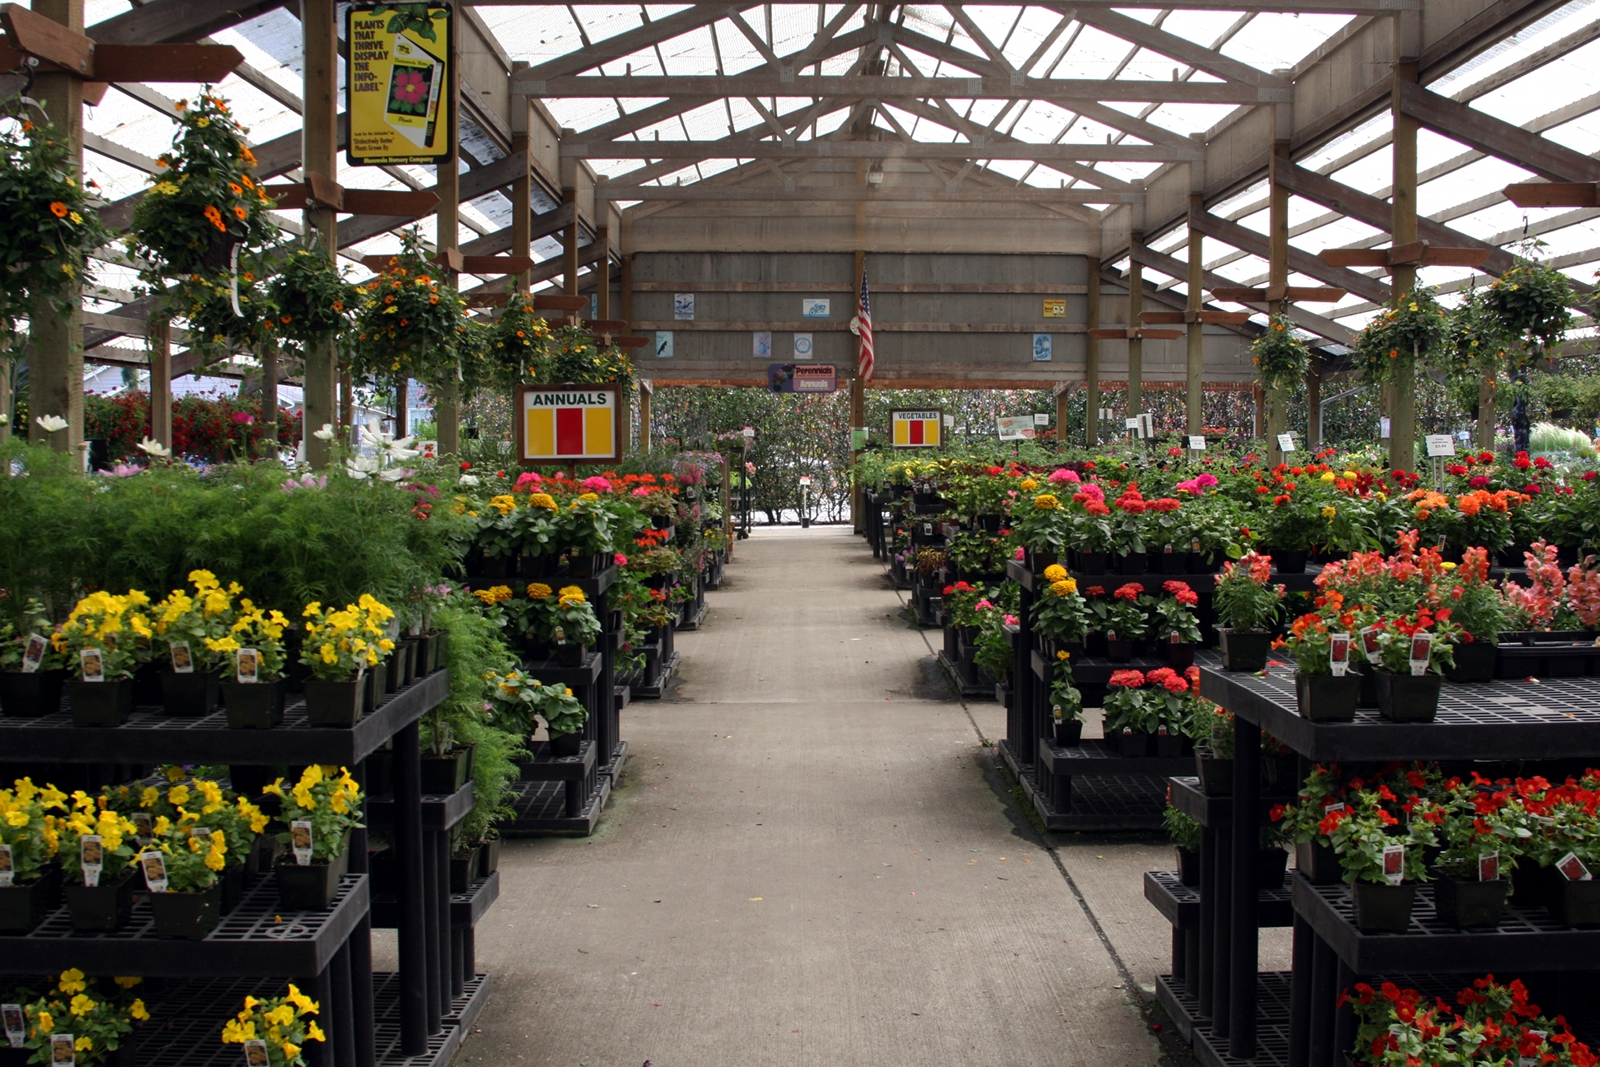 Portland Avenue Nursery: Established in 1941, Portland Avenue Nursery (1409 E 59th St) has grown into a four acre facility. In addition to flowers, shrubs, and trees, you can find a variety of containers and cedar furniture here. With their knowledgeable staff and wide variety of plants, this nursery offers a nice alternative to anyone trying to avoid a box store for their gardening needs.